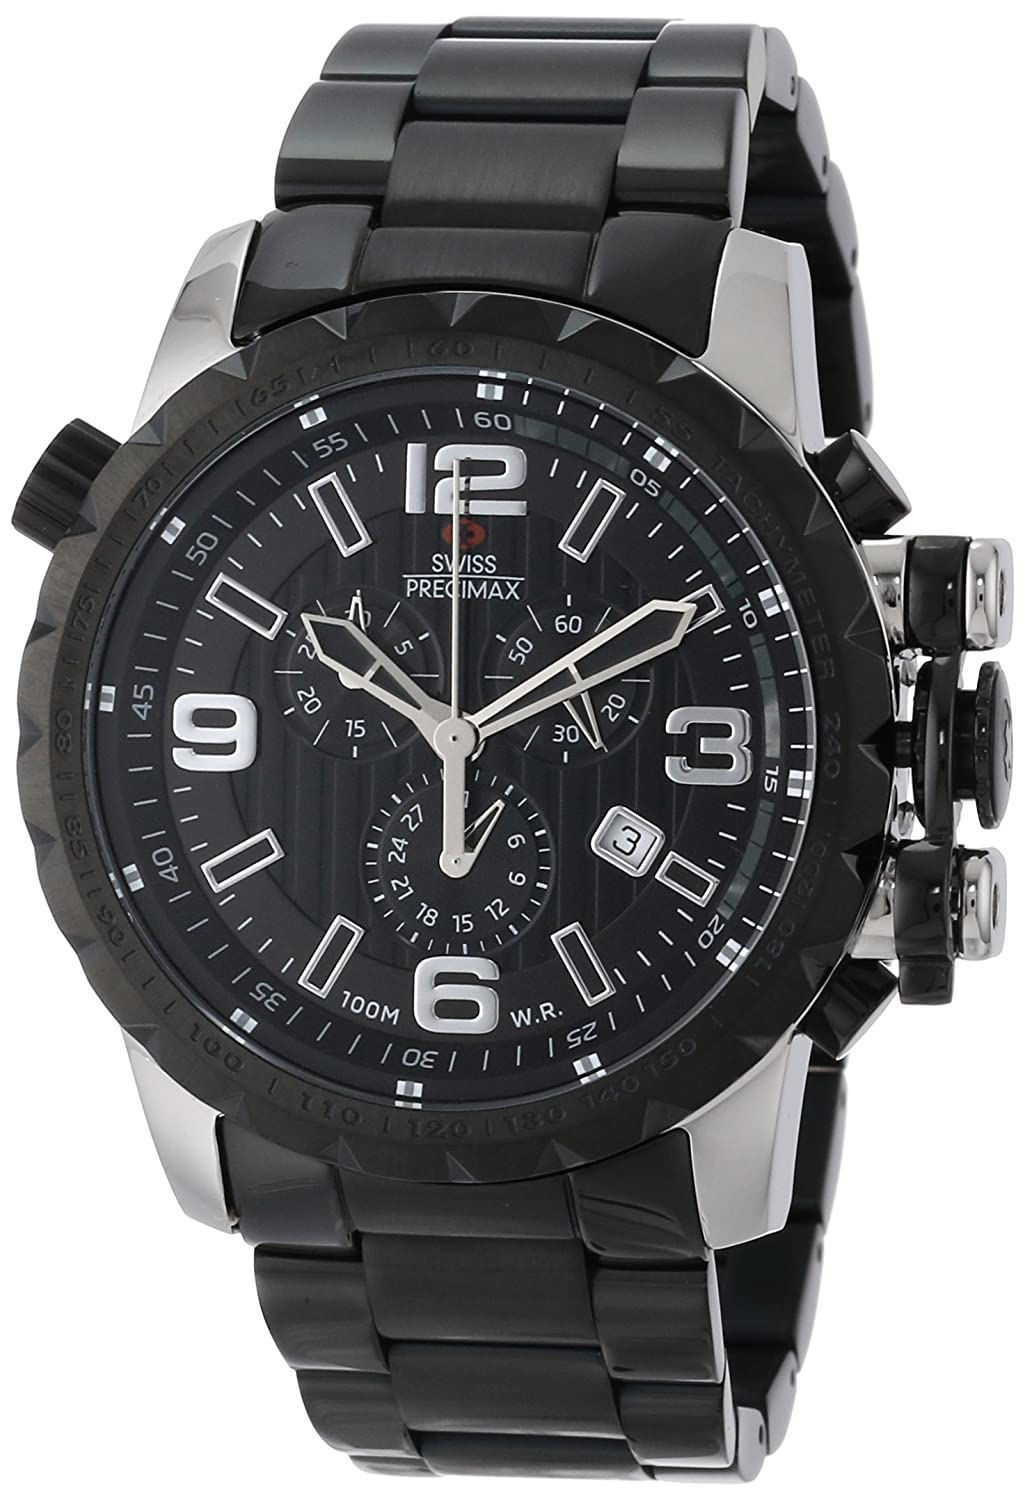 Swiss Precimax Men 's sp13142 Magnus Pro Black Dial with BlackステンレススチールBand Watch B00DBEZZPW